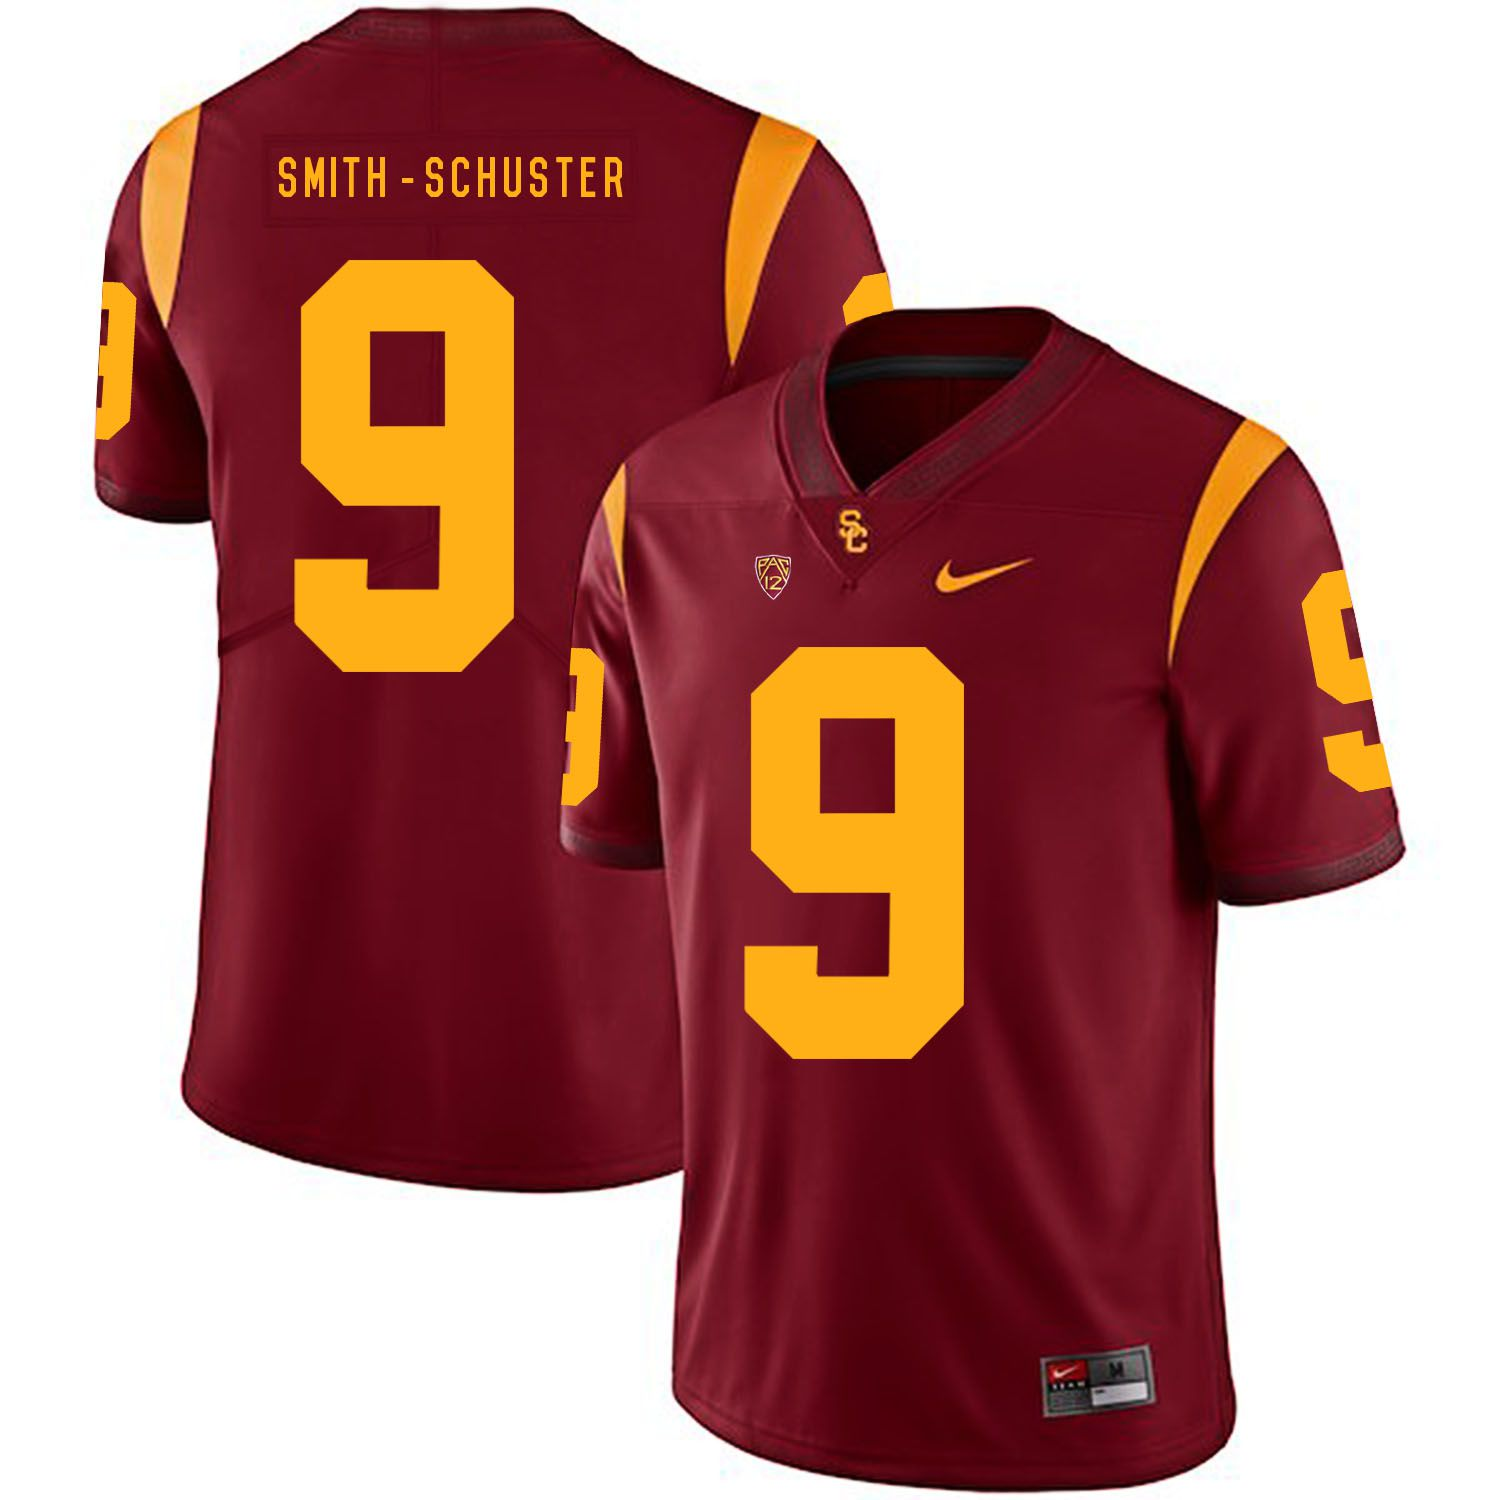 Men USC Trojans 9 Smith-Schuster Red Customized NCAA Jerseys